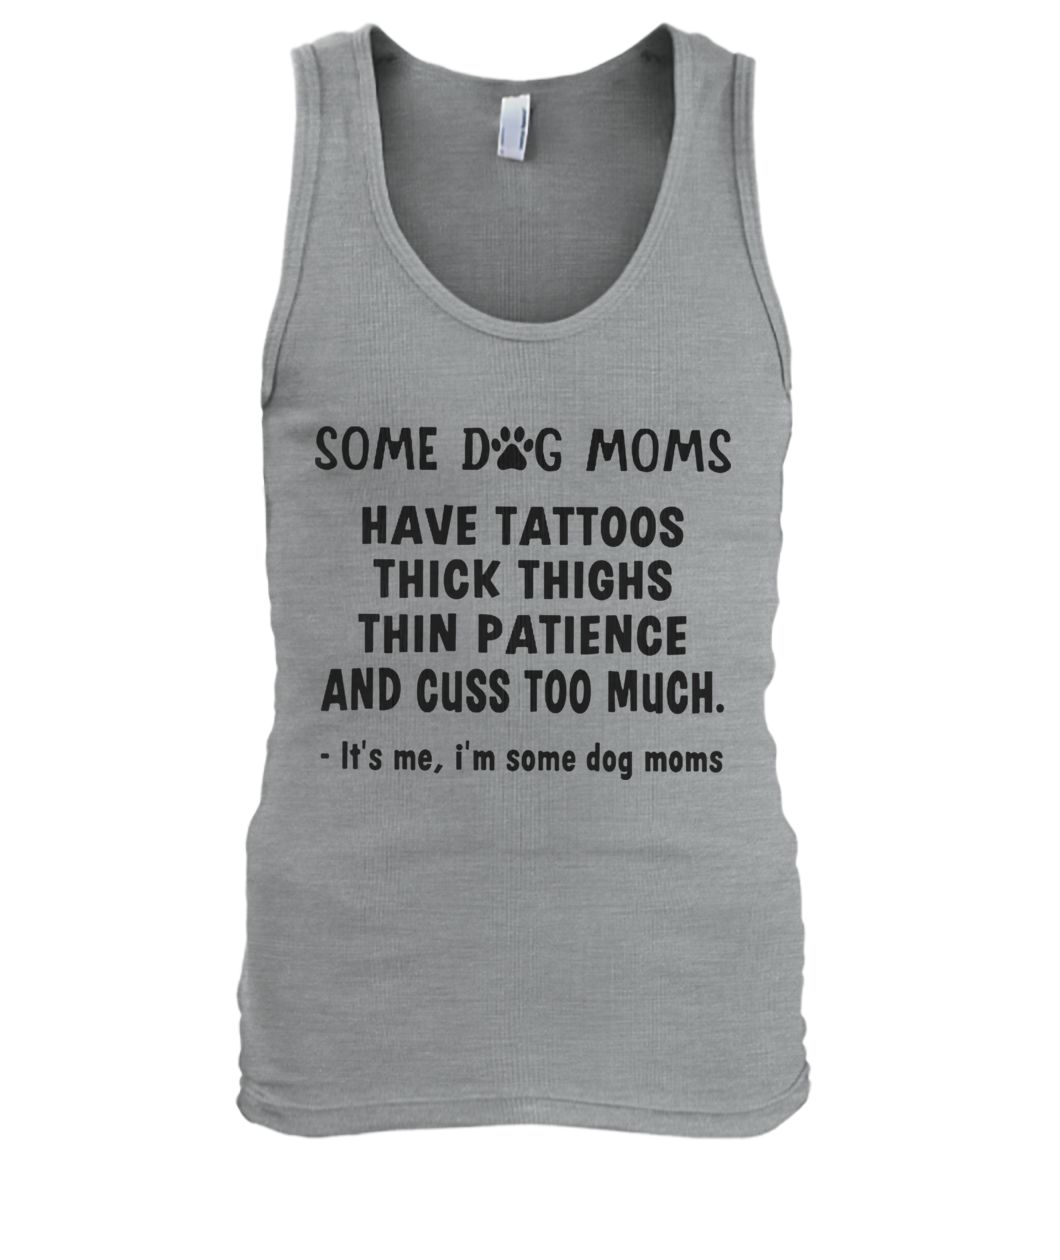 Some dog moms have tattoos thick thinks thin paticence and cuss too much it's me I'm some dog moms men's tank top